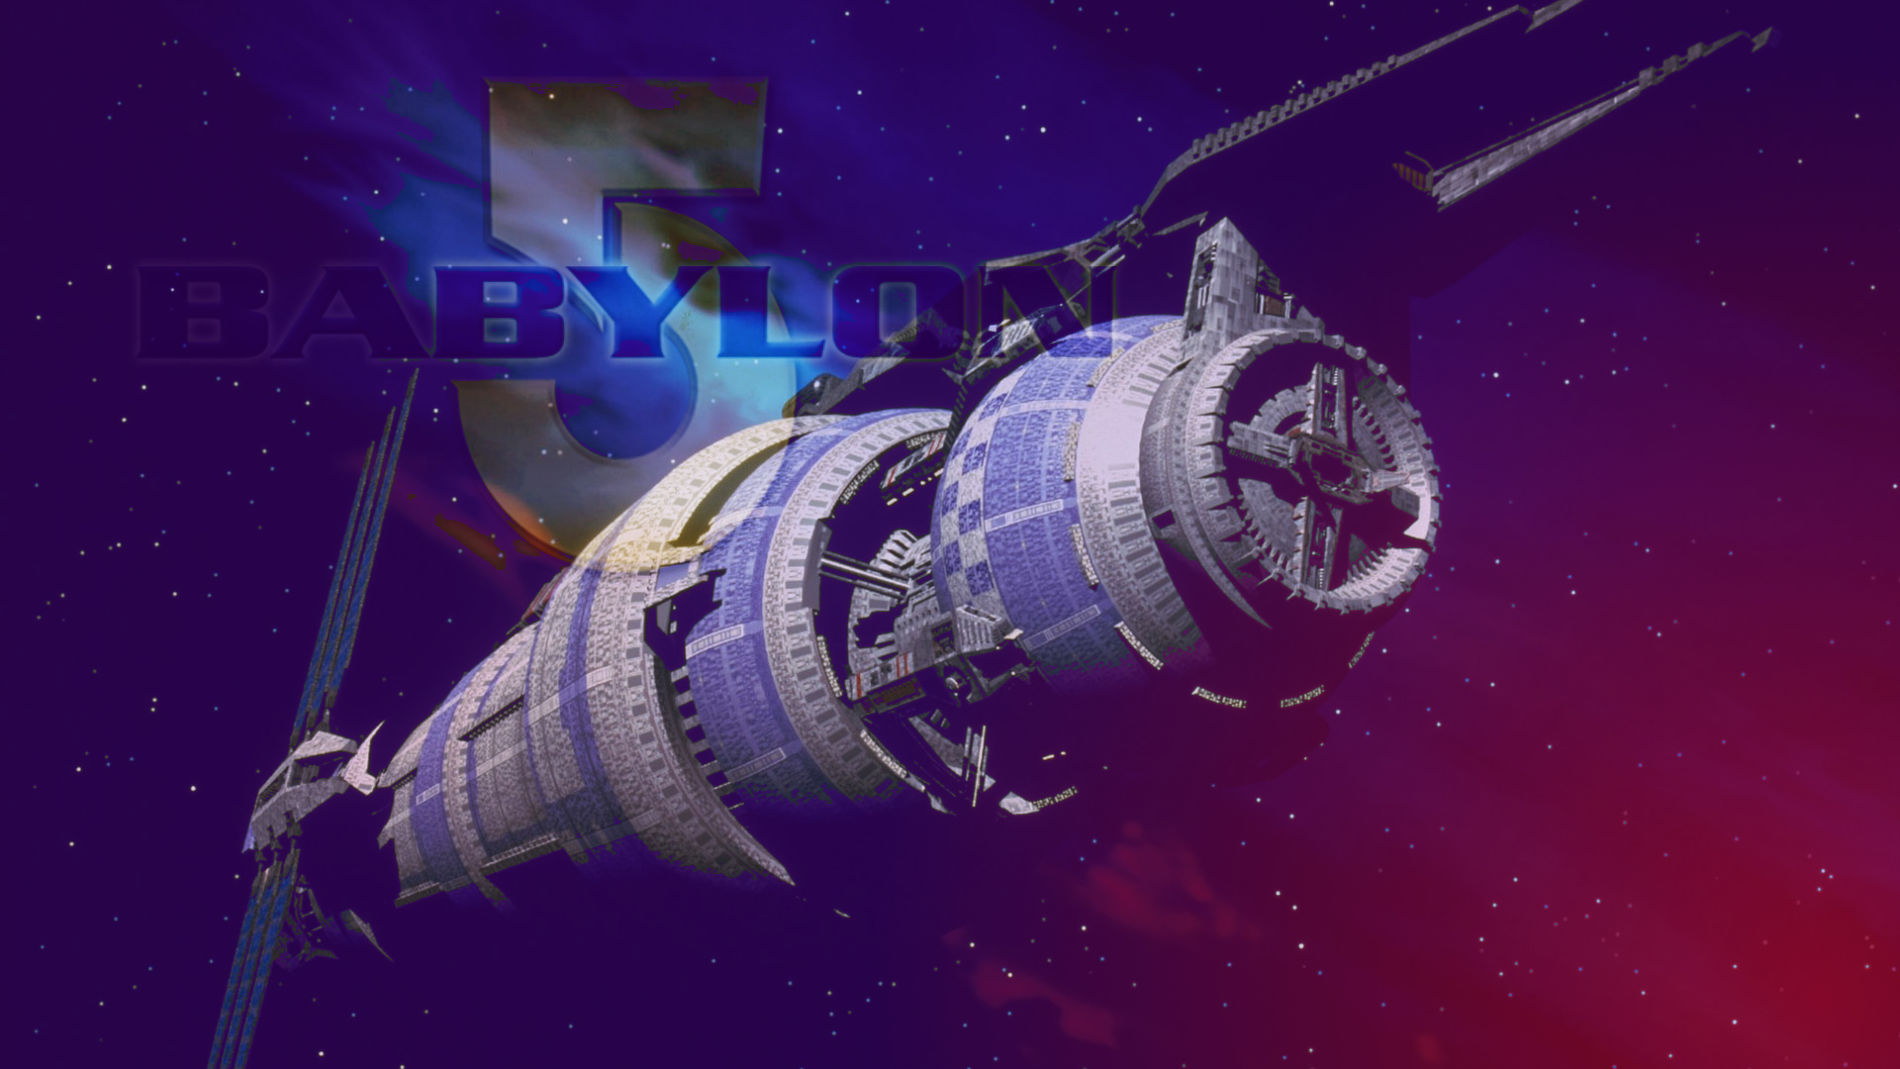 Babylon 5 space station